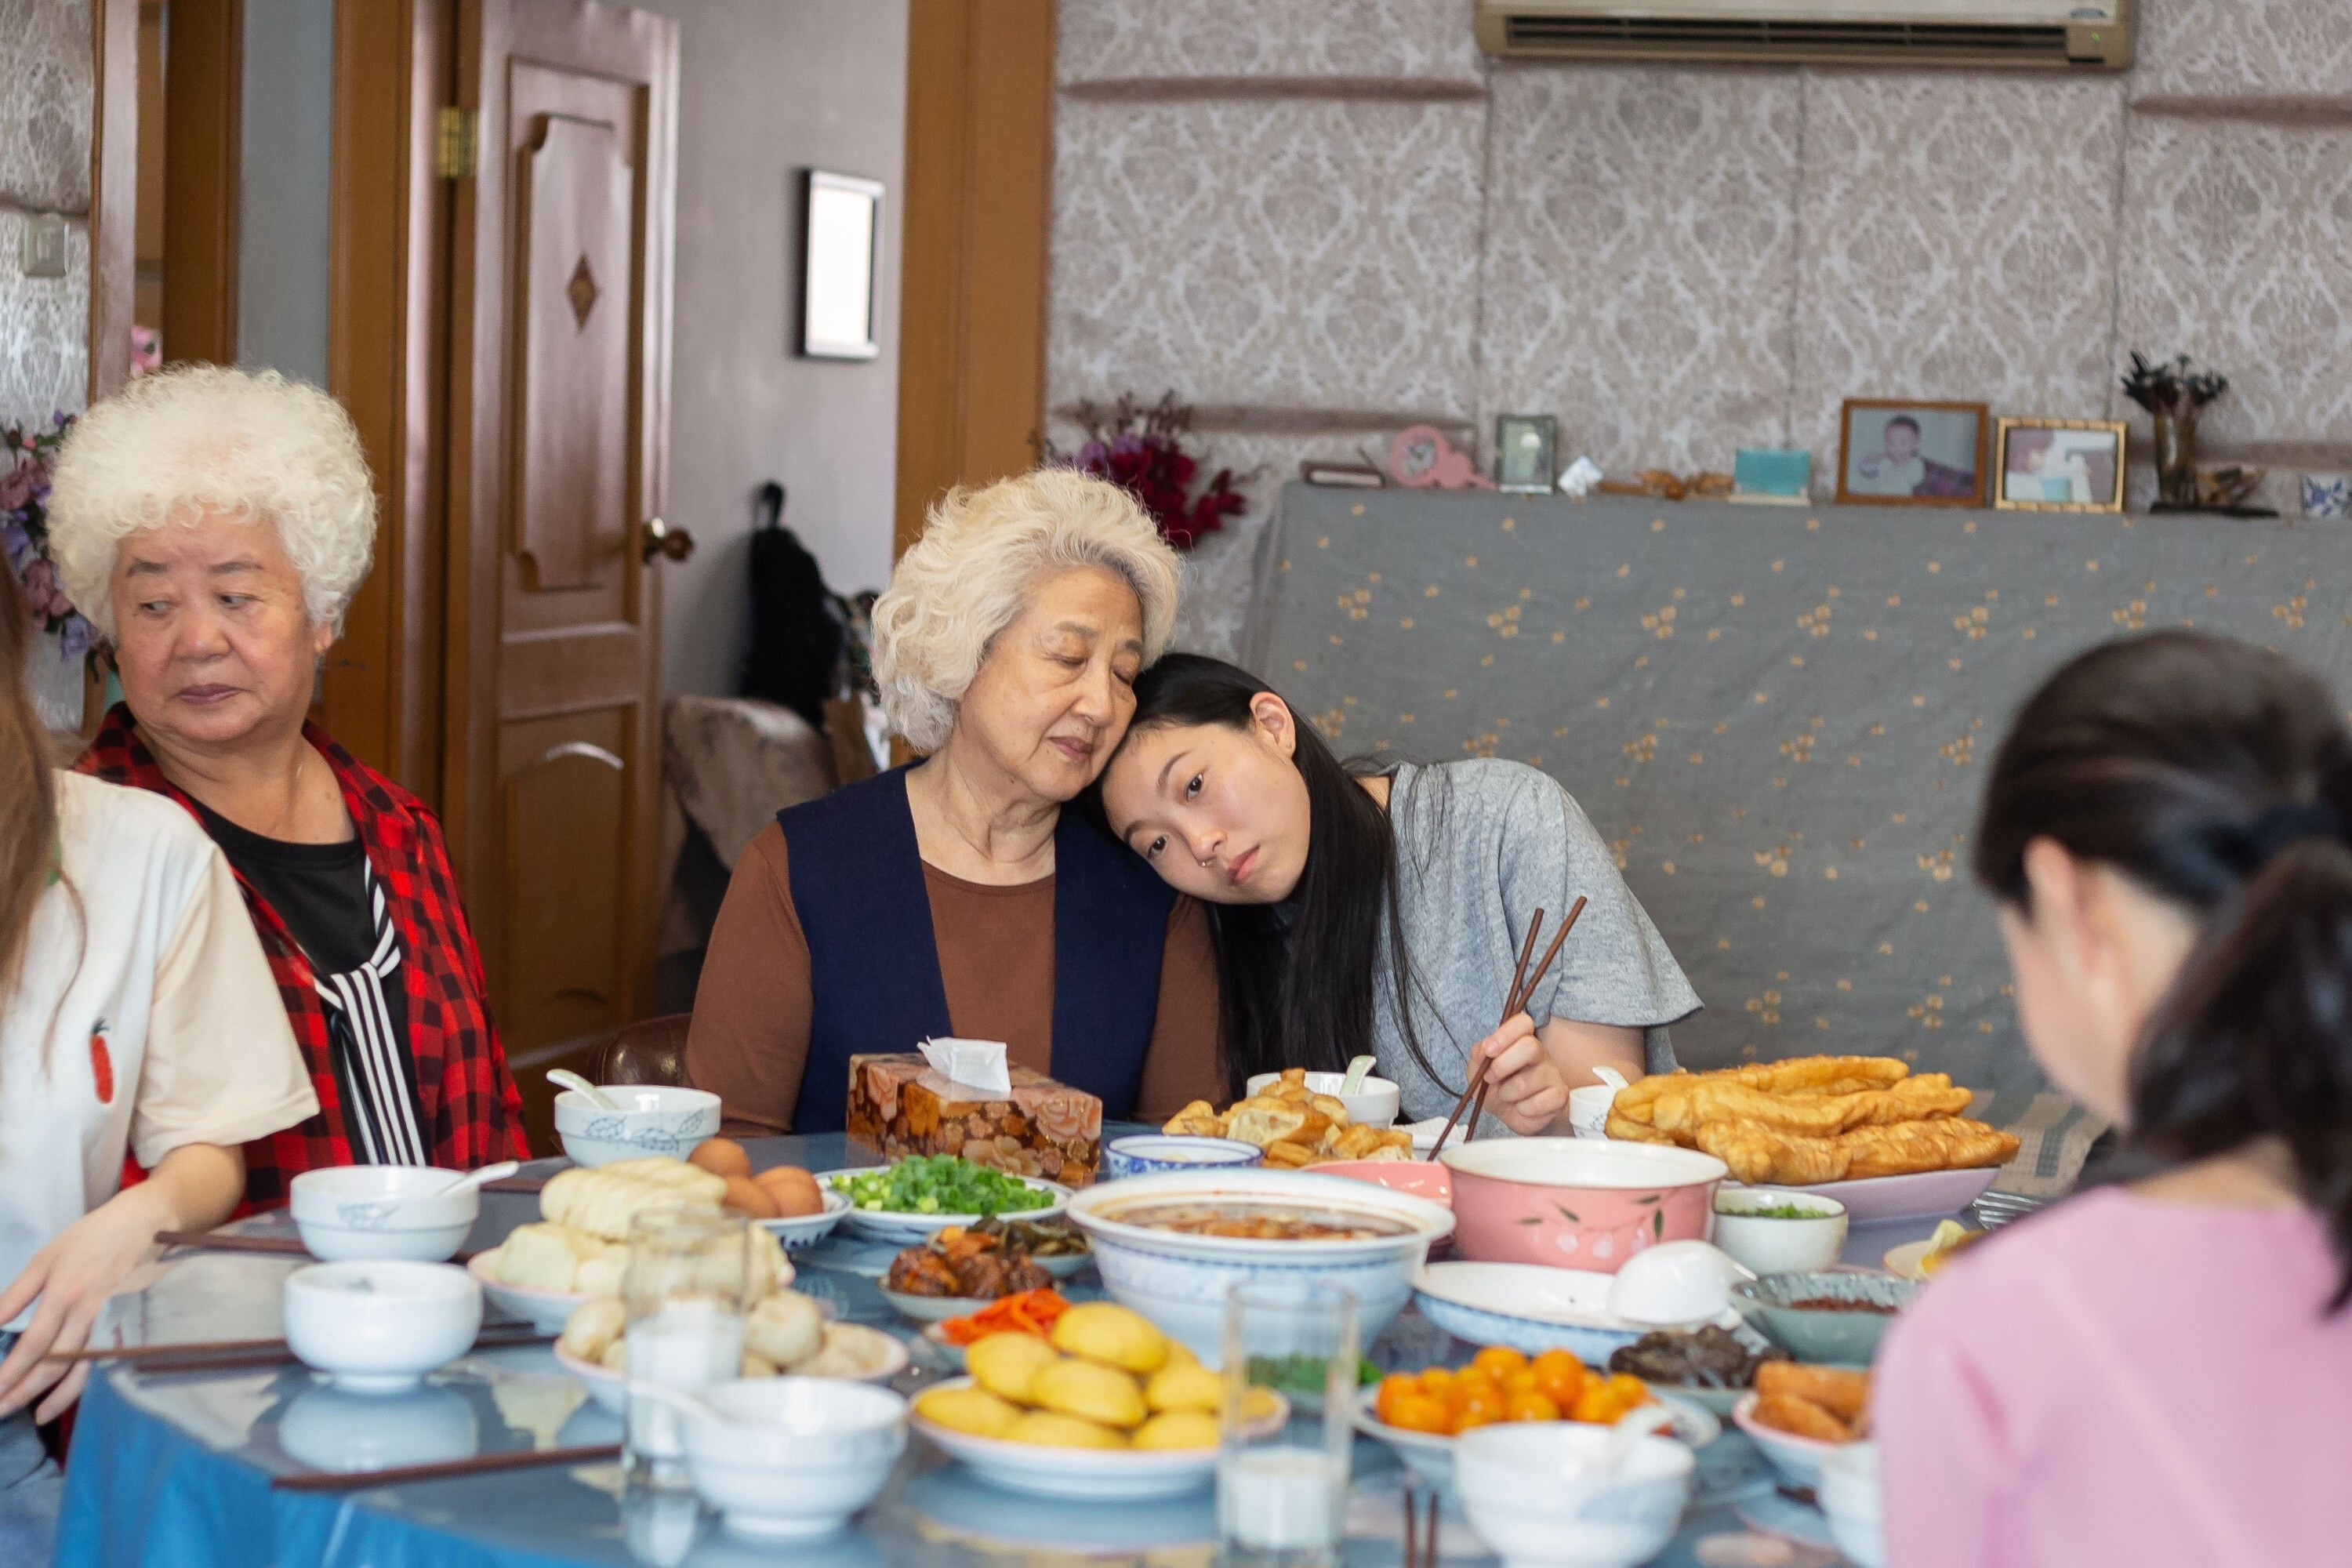 Awkwafina leens on Zhao Shuzhen's shoulder at the dinner table